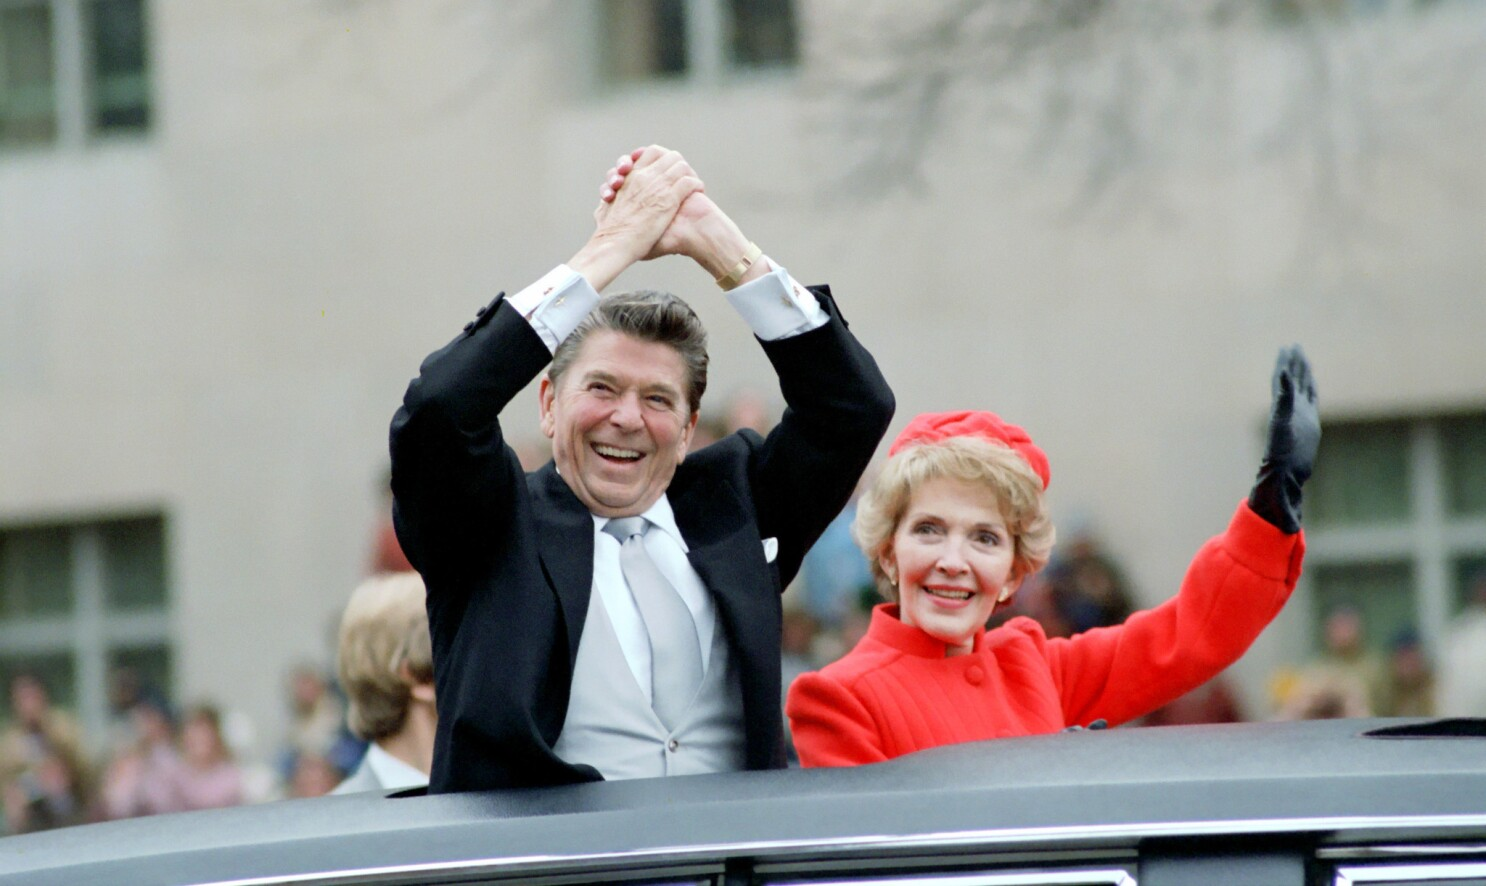 Ronald Reagan's presidency was one of the most destructive in U.S. history